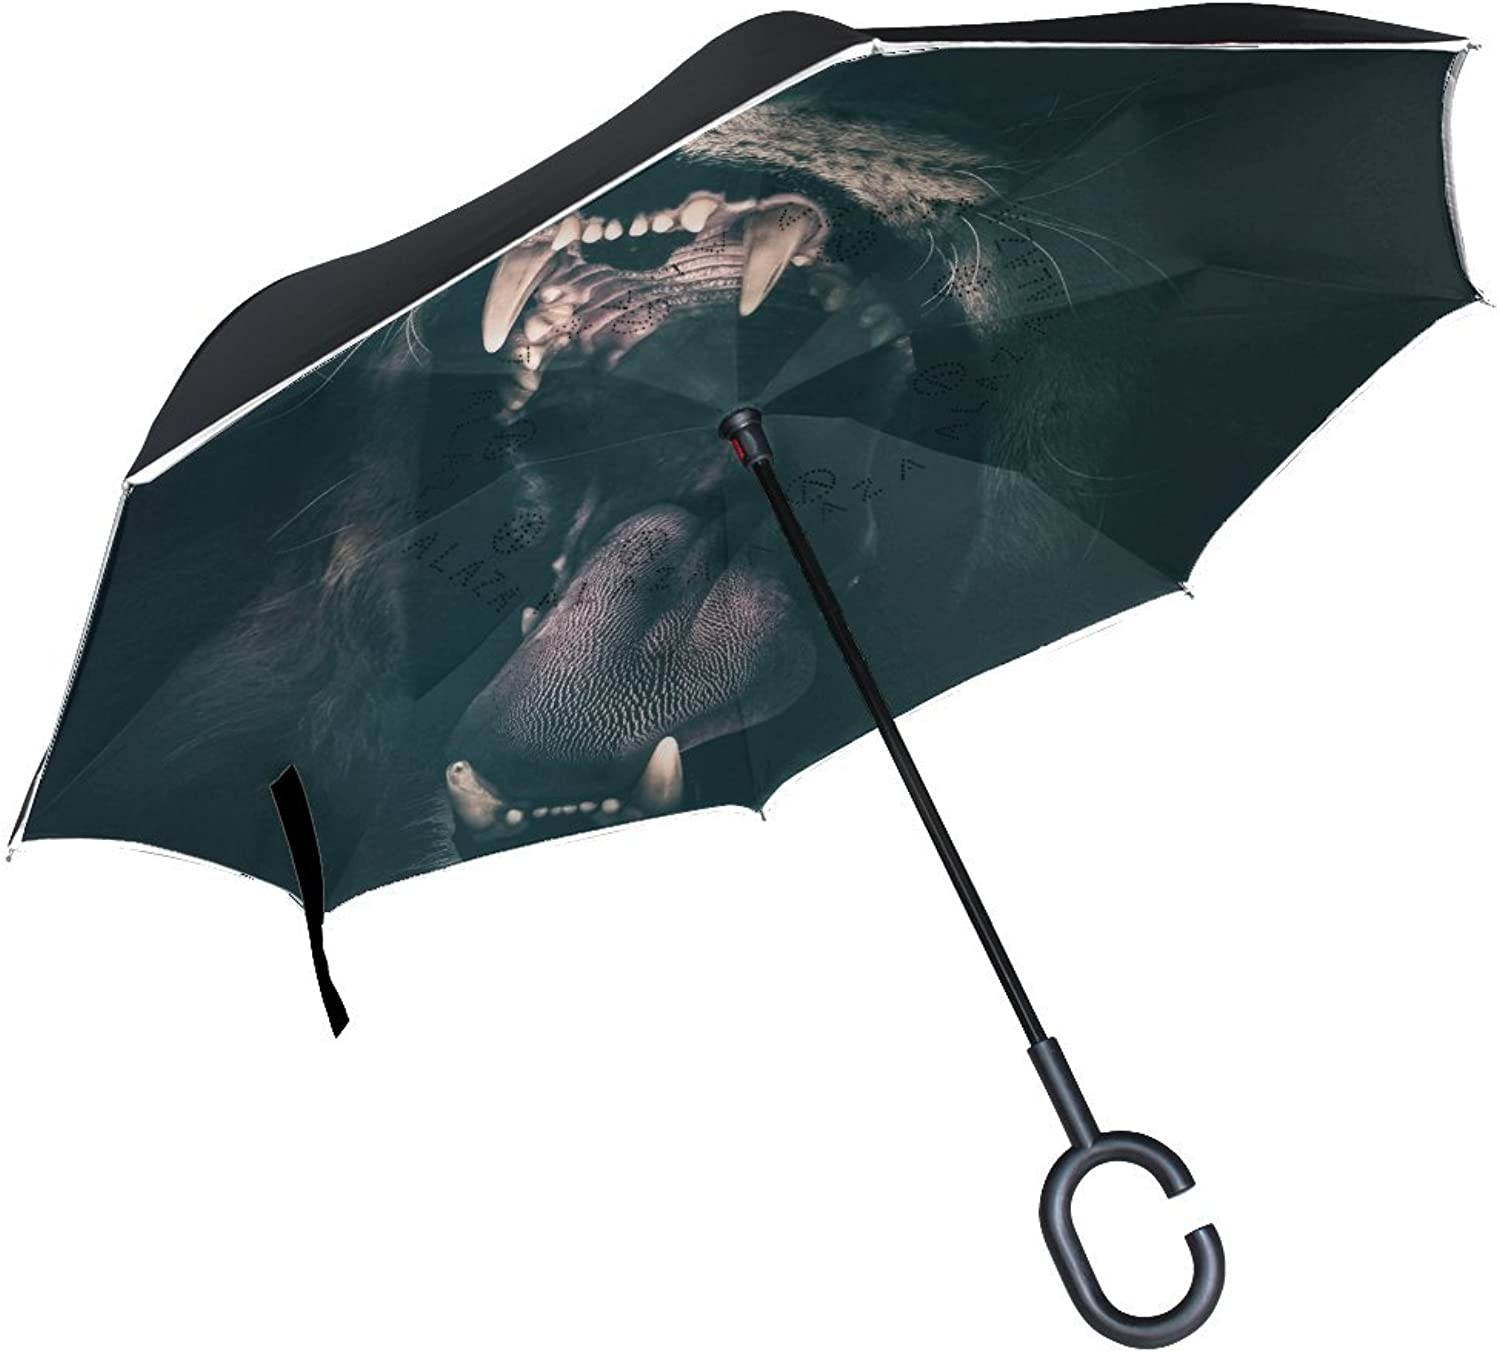 Animal Lion Blackandwhite Ingreened Umbrella Large Double Layer Outdoor Rain Sun Car Reversible Umbrella